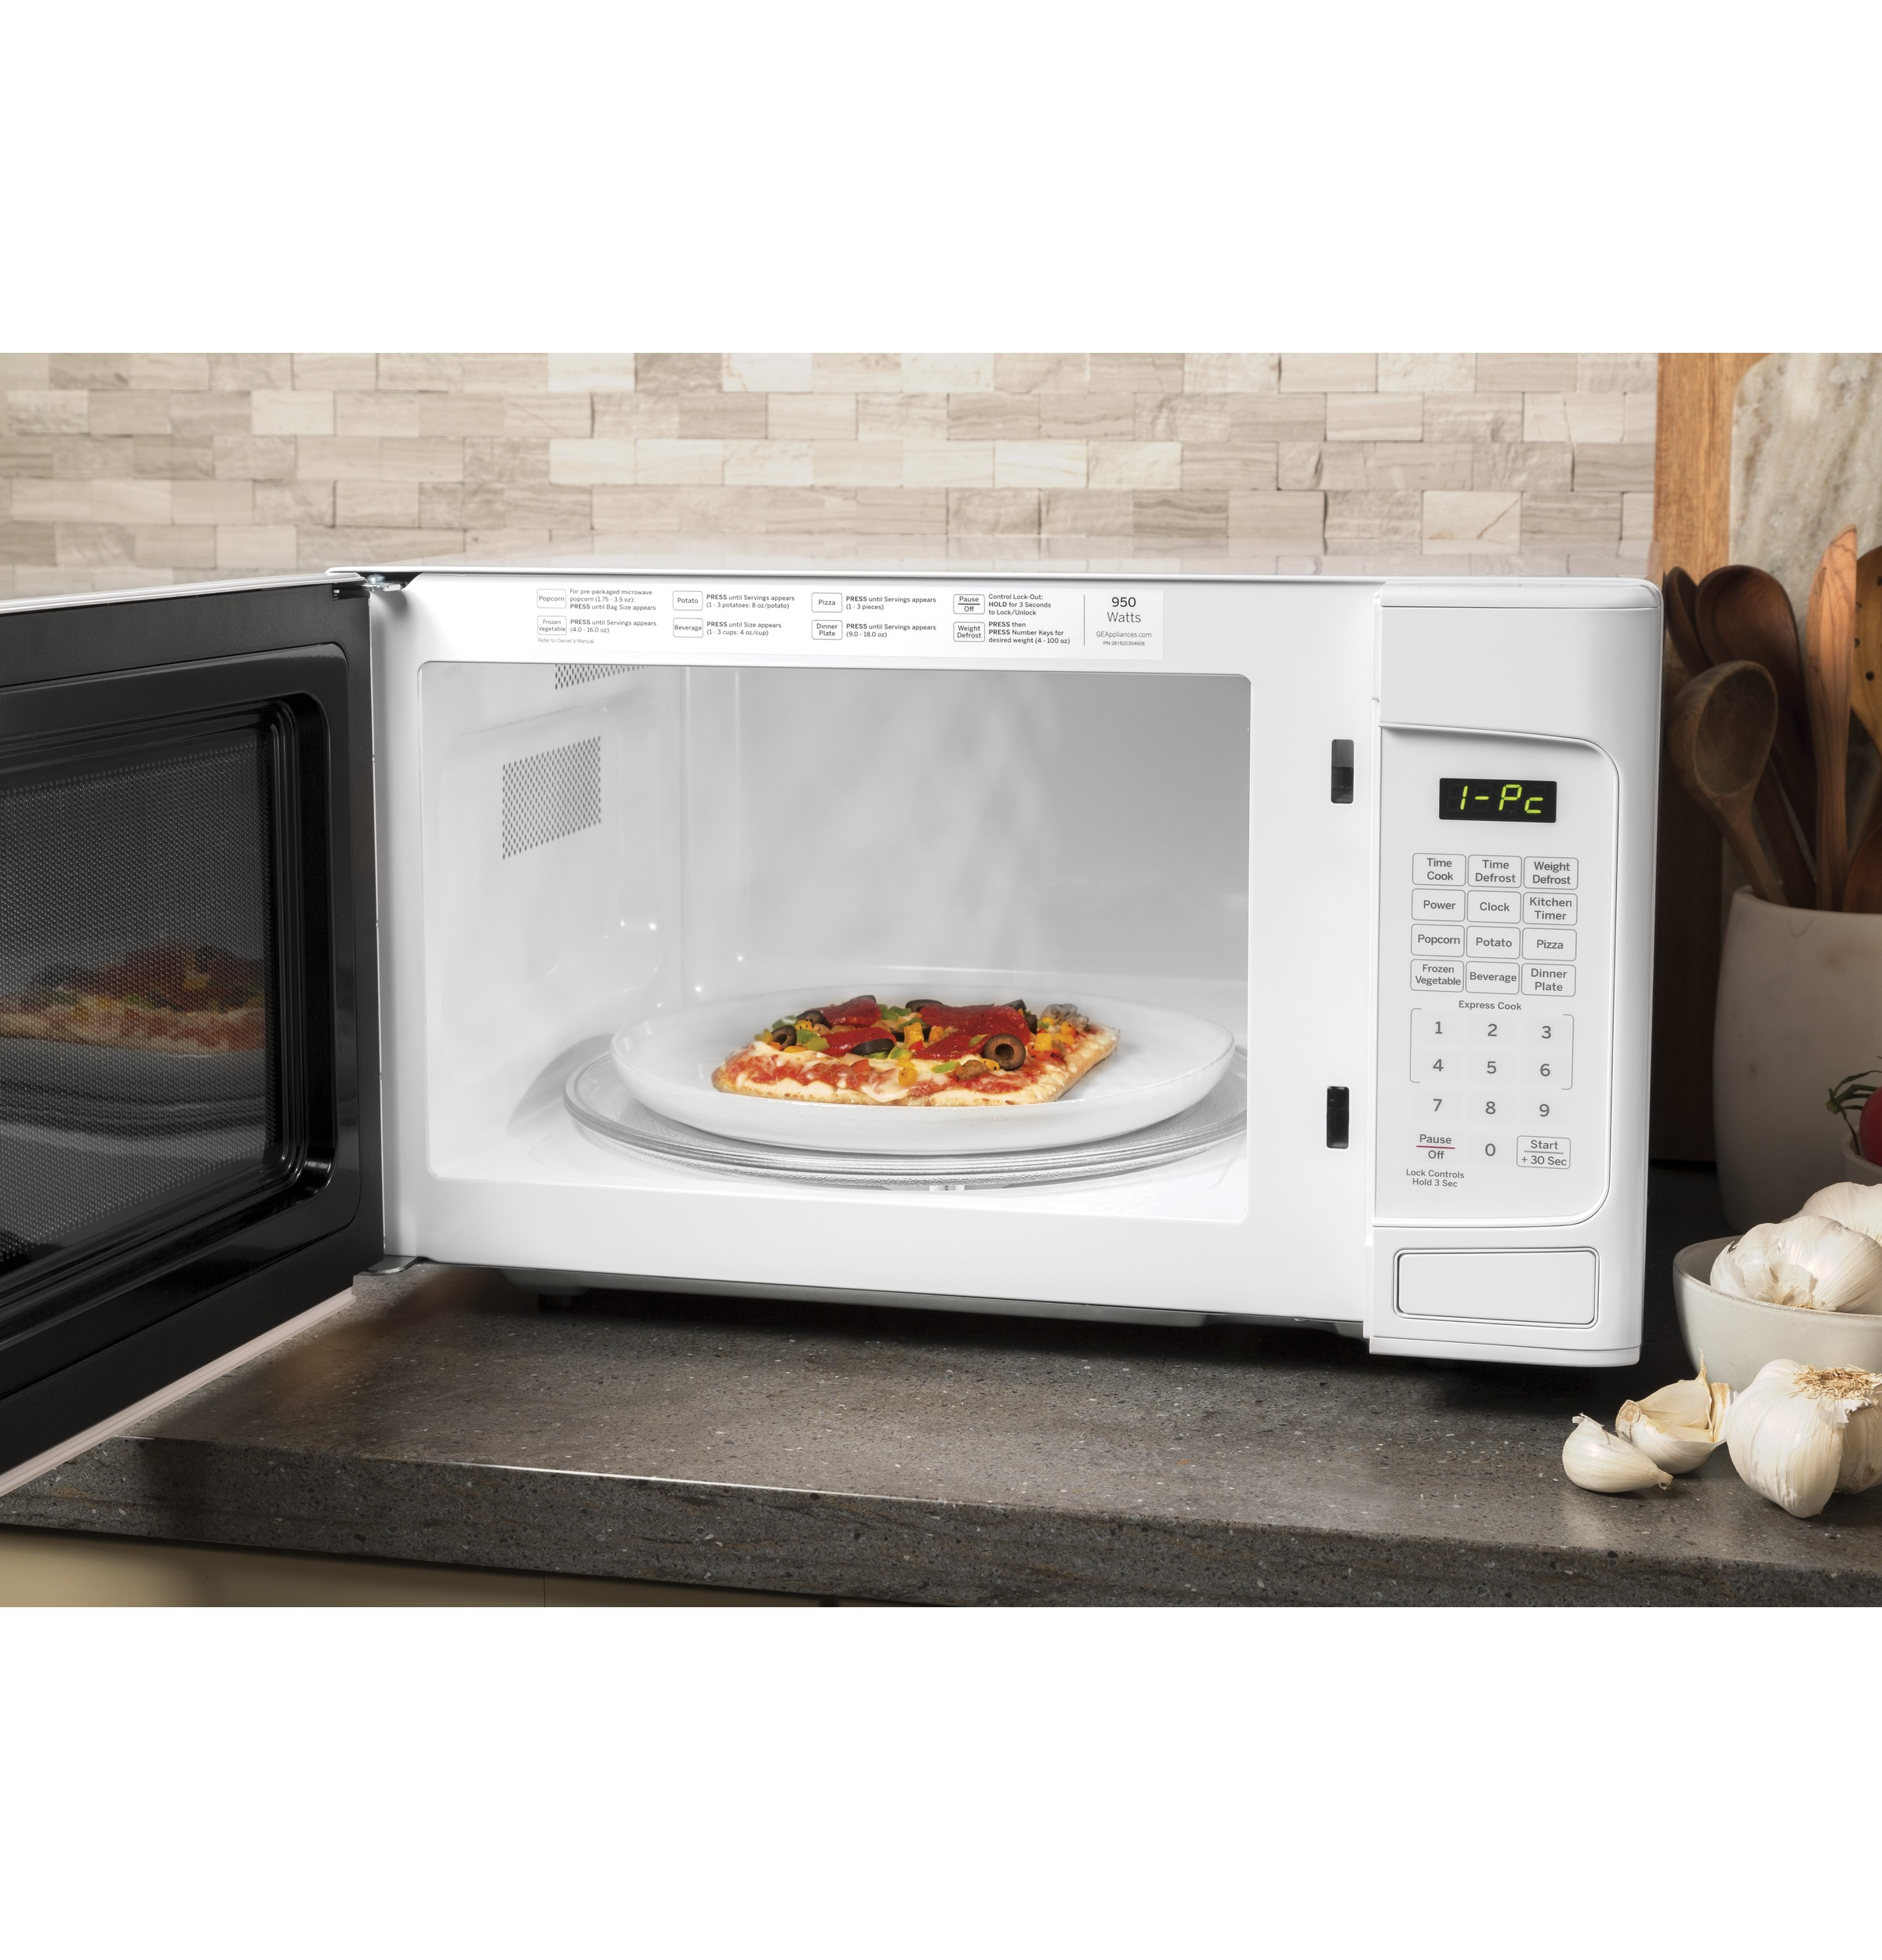 heston review sage expert quick microwave appliances microwaves celebrity billing lives up countertops to home crisp reviews oven its touch countertop by the blumenthal